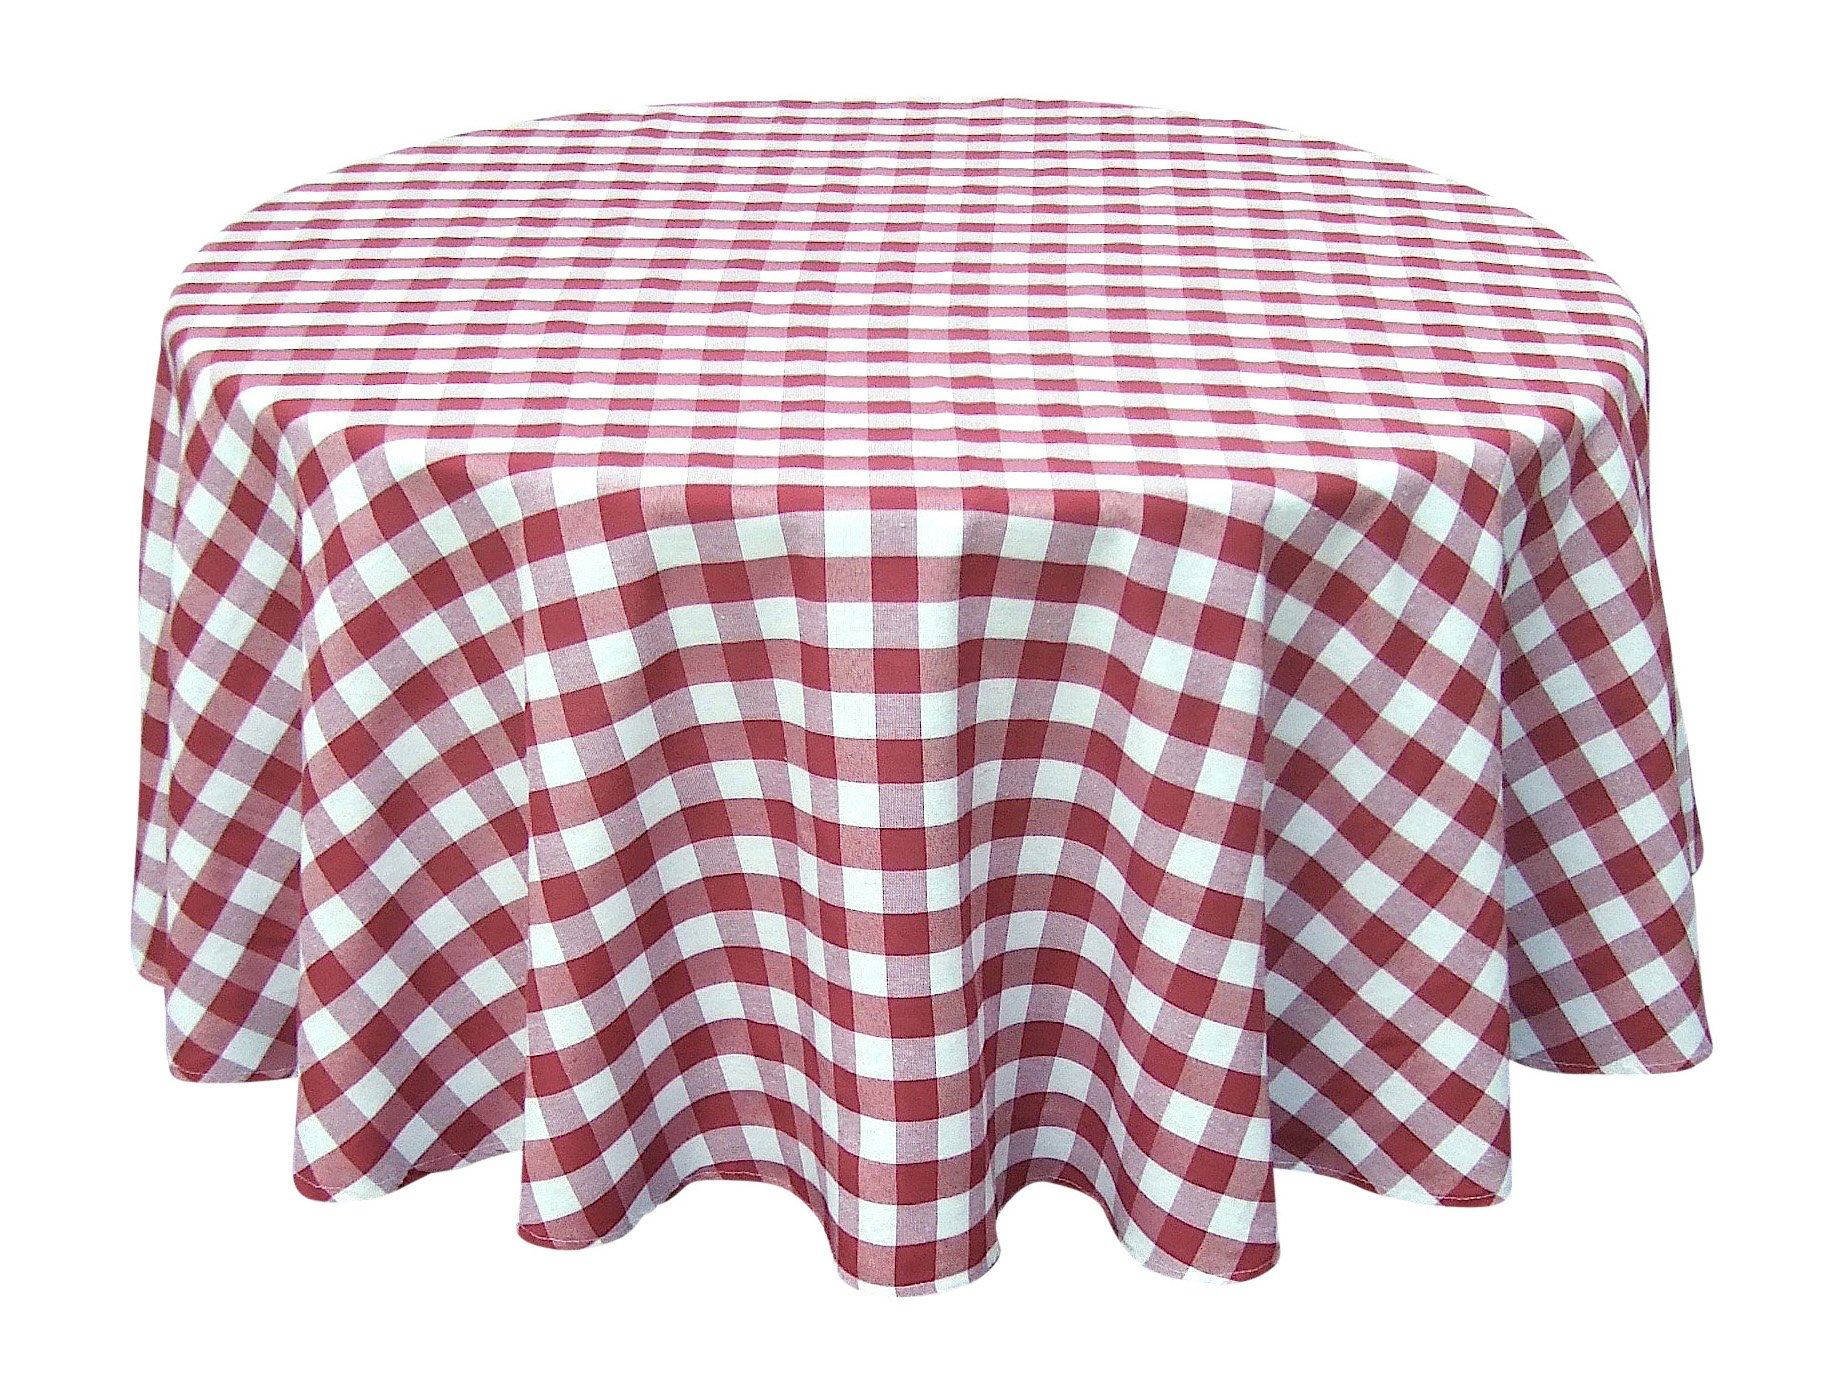 Wine Red White Tablecloths: Gingham Checkered Design (58'' x 84'' Rectangle)